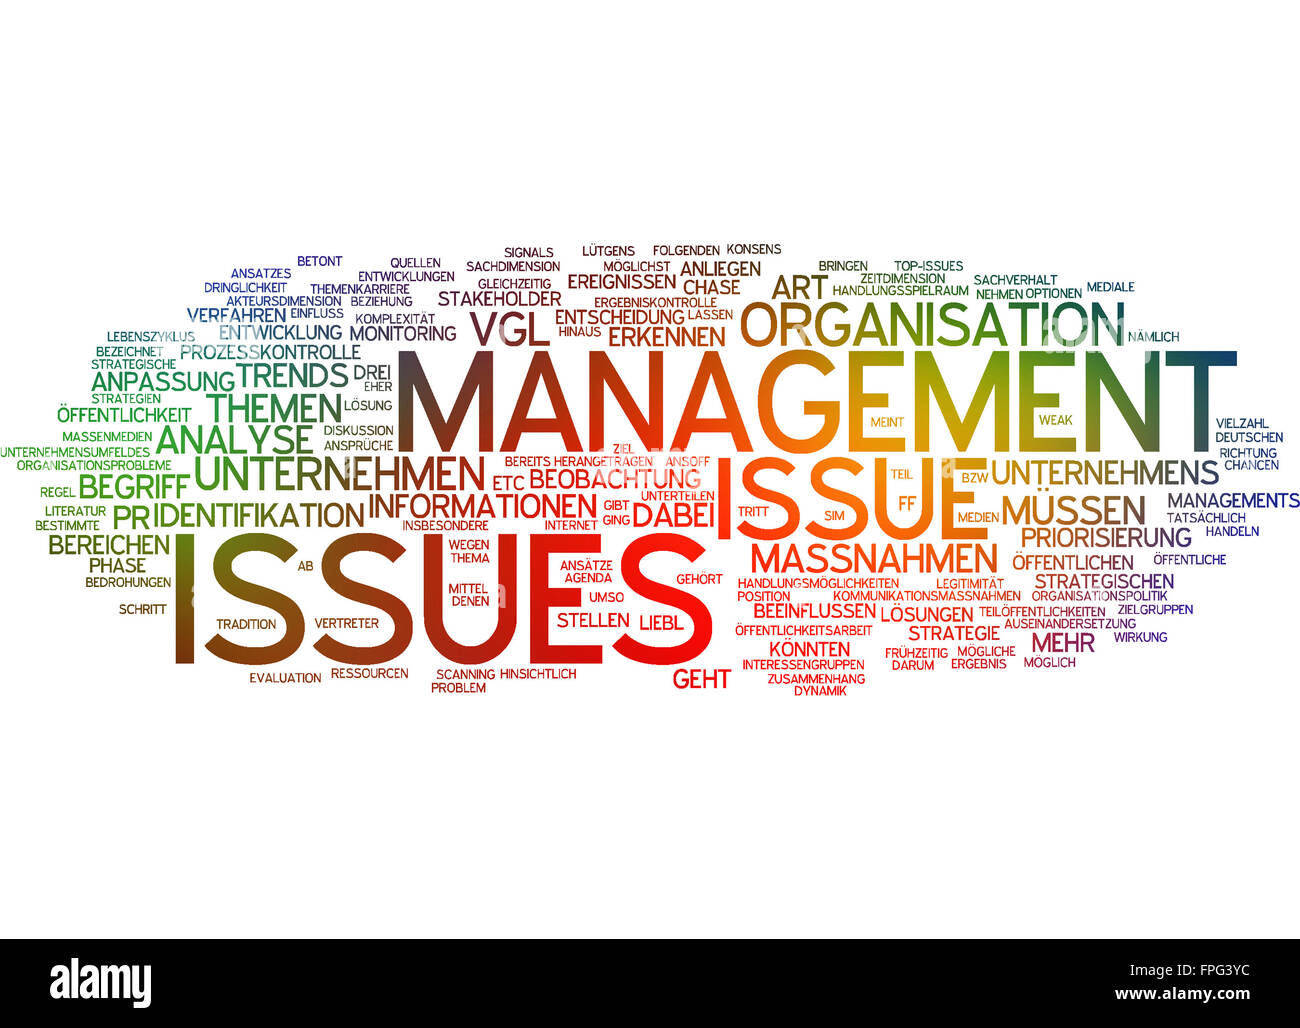 managerial issues associated with managing an Management-related issues are an important aspect of monitoring asthma in  children in clinical practice this review summarises the literature on practical.